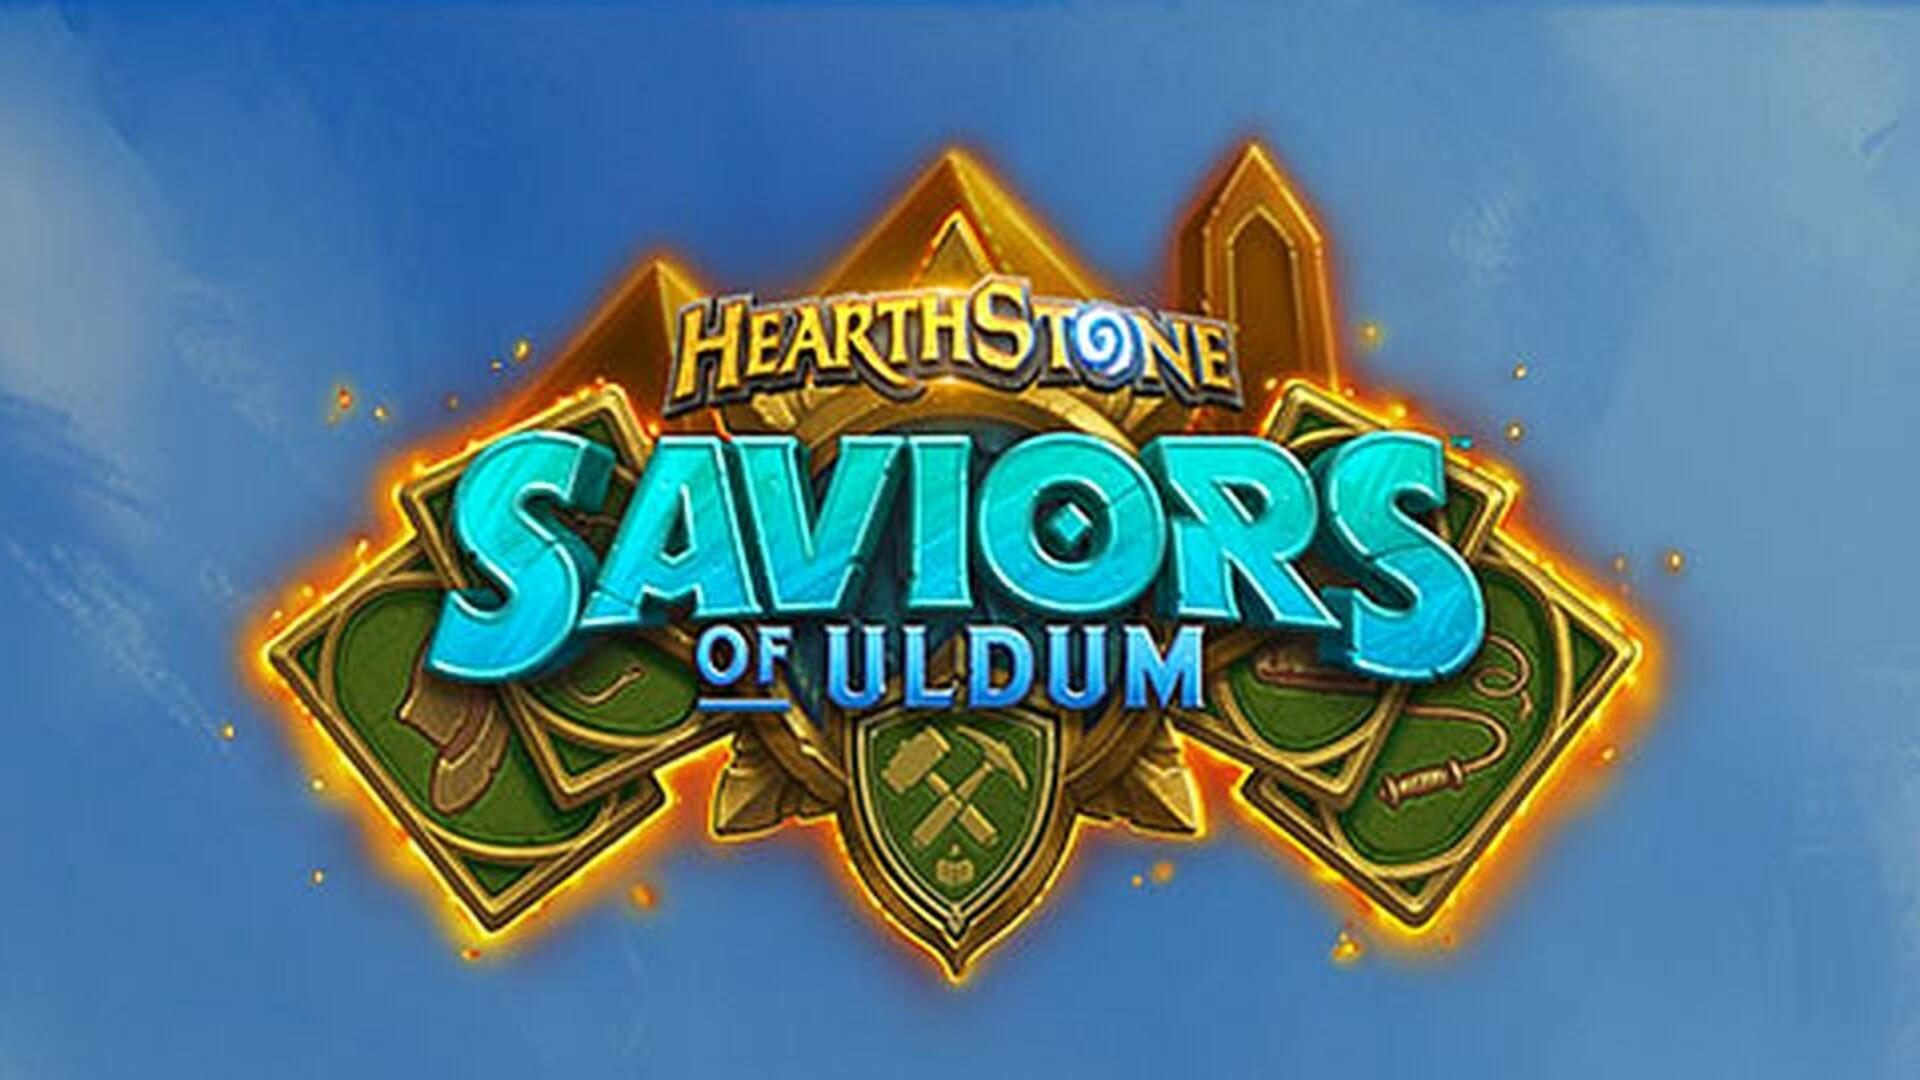 Hearthstone Saviors of Uldum Deck Guides, Trailer, Plague Cards, and Quests